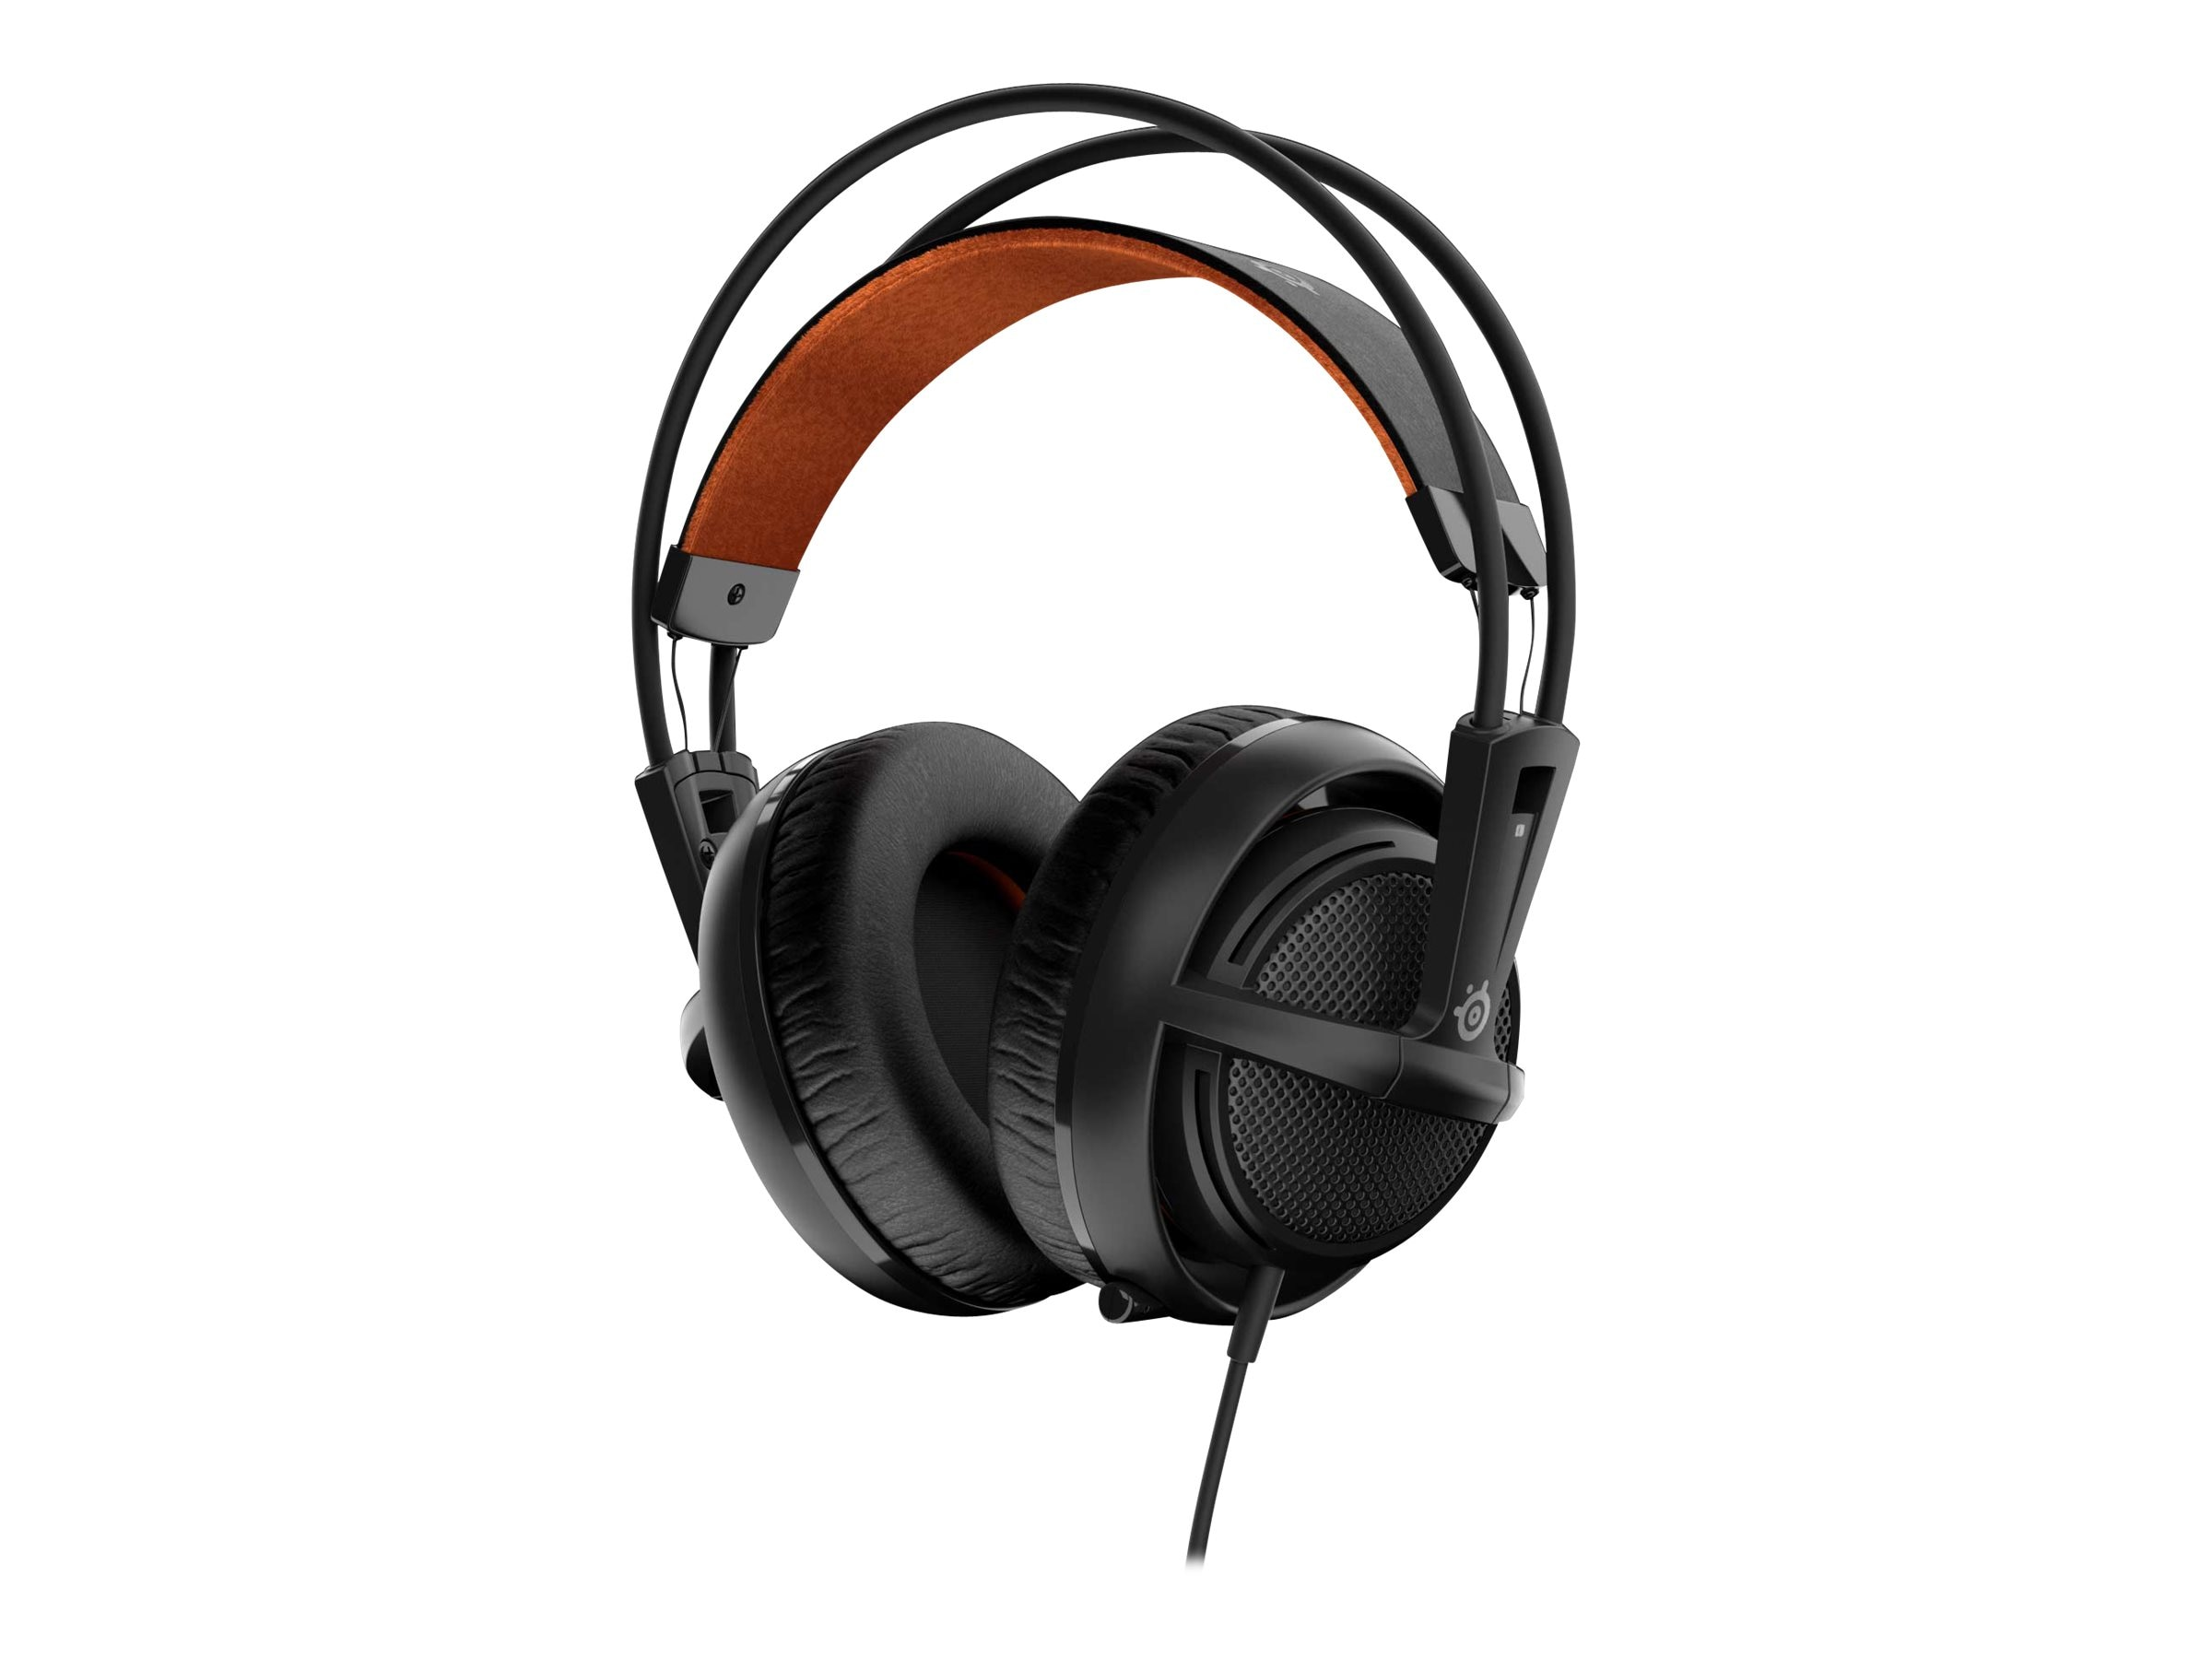 Steelseries Siberia 200 Headset - Black